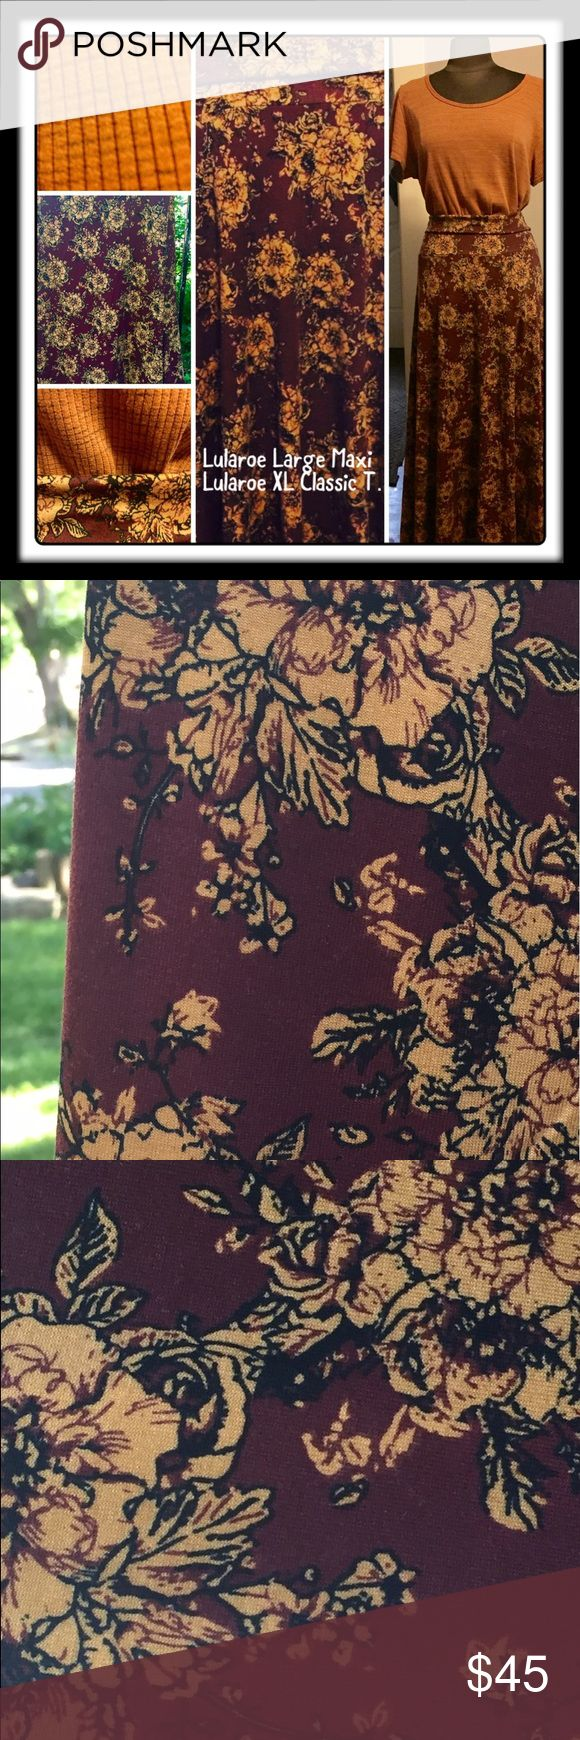 💛Lularoe Large Maxi Skirt & XL Classic Tee💛 These 2 Lula pieces have been worn 1 time together. I got the skirt and then had to search high and low for the shirt to match. It's a gorgeous outfit--deep mauveish/purple background with golden/mustard flowers with black outline. I am slimming out my Lula wordrobe as I am a bit obsessed! 😬 These pieces may be purchased separate or together. Asking $17 (FIRM) on the Maxi and $25 (FIRM) on the Classic T. Outfit is $45!!! check out my flyer and…